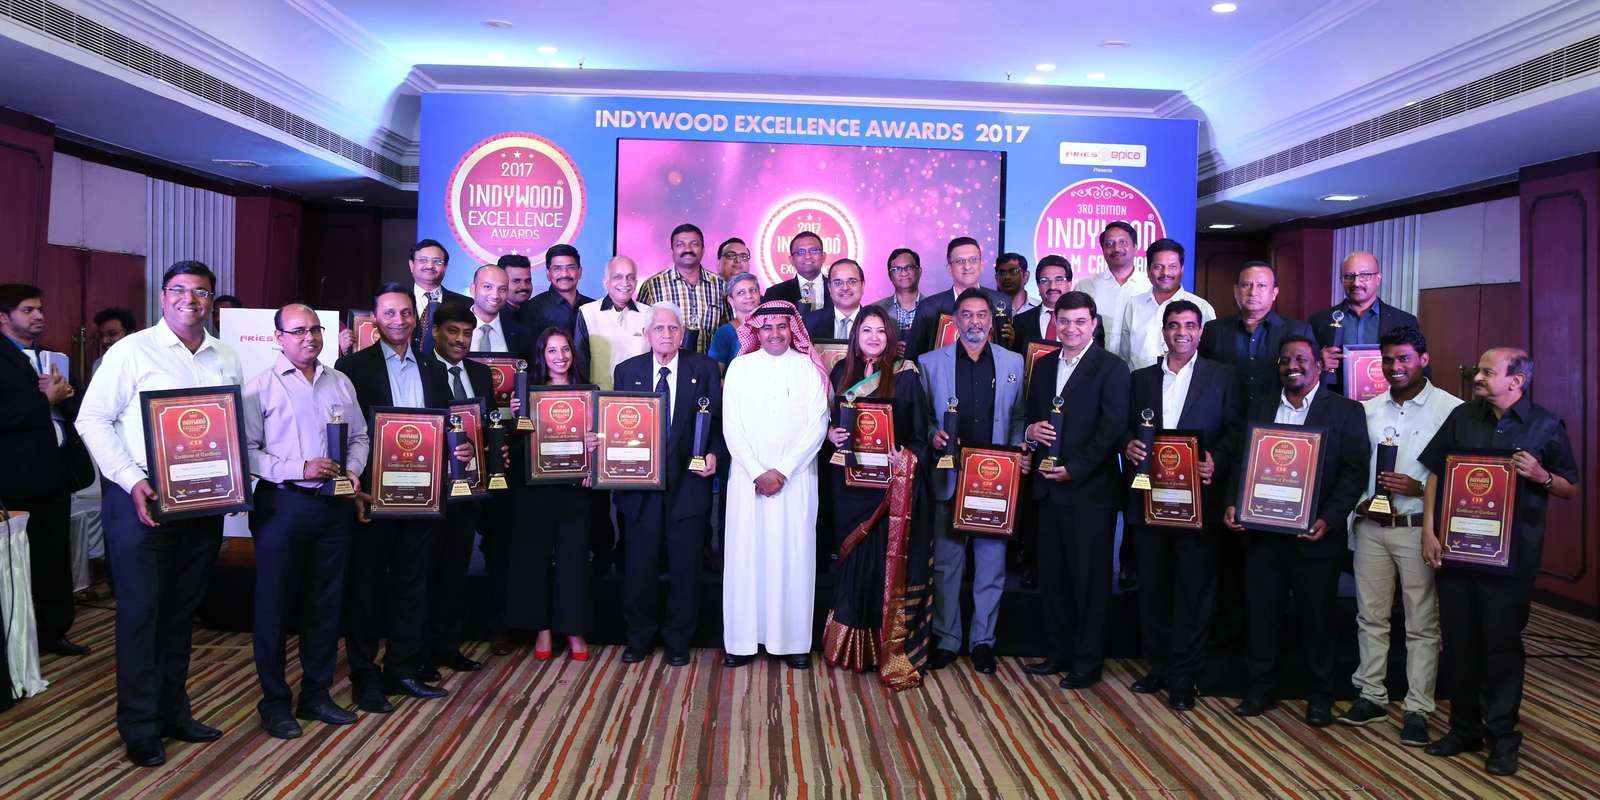 Cinema: Indywood CSR Excellence Awards 2017 successfully concluded at Hyderabad